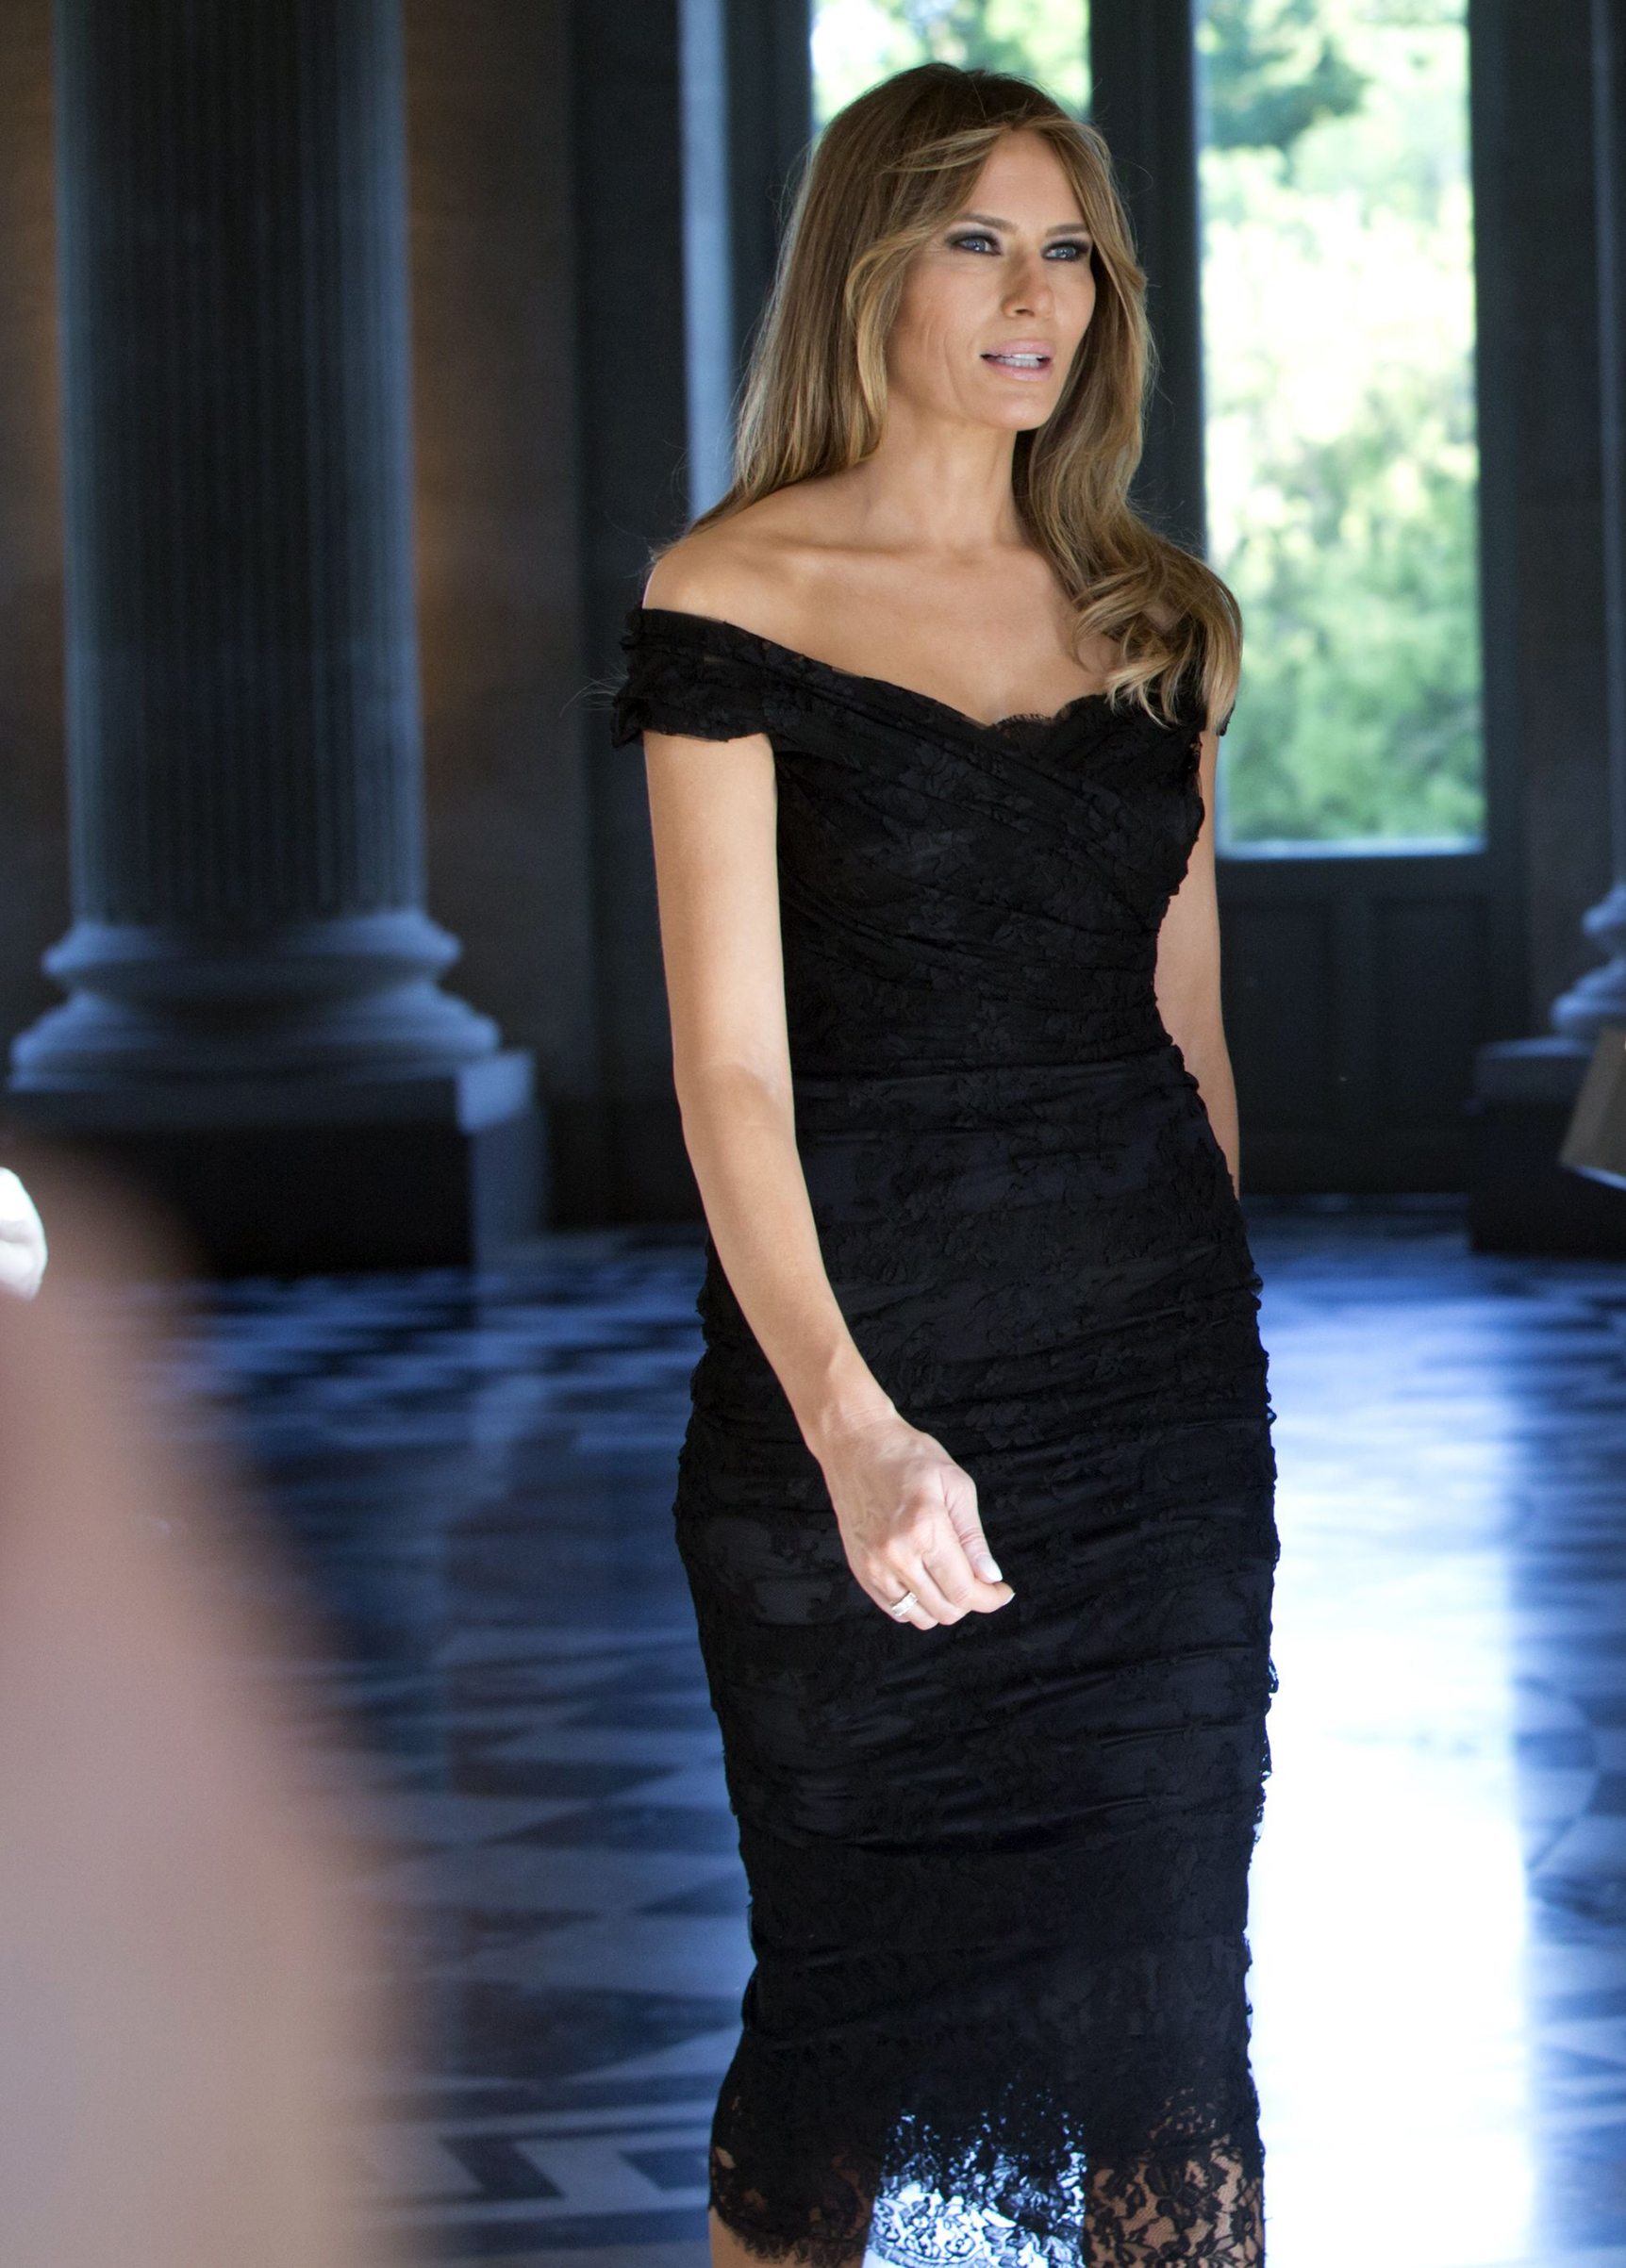 First lady Melania Trump wearing a Dolce & Gabbana black lace dress, walks prior to a group photo during the spouse and partner program at the Royal Palace of Laeken, near Brussels, 25,  May 2017.